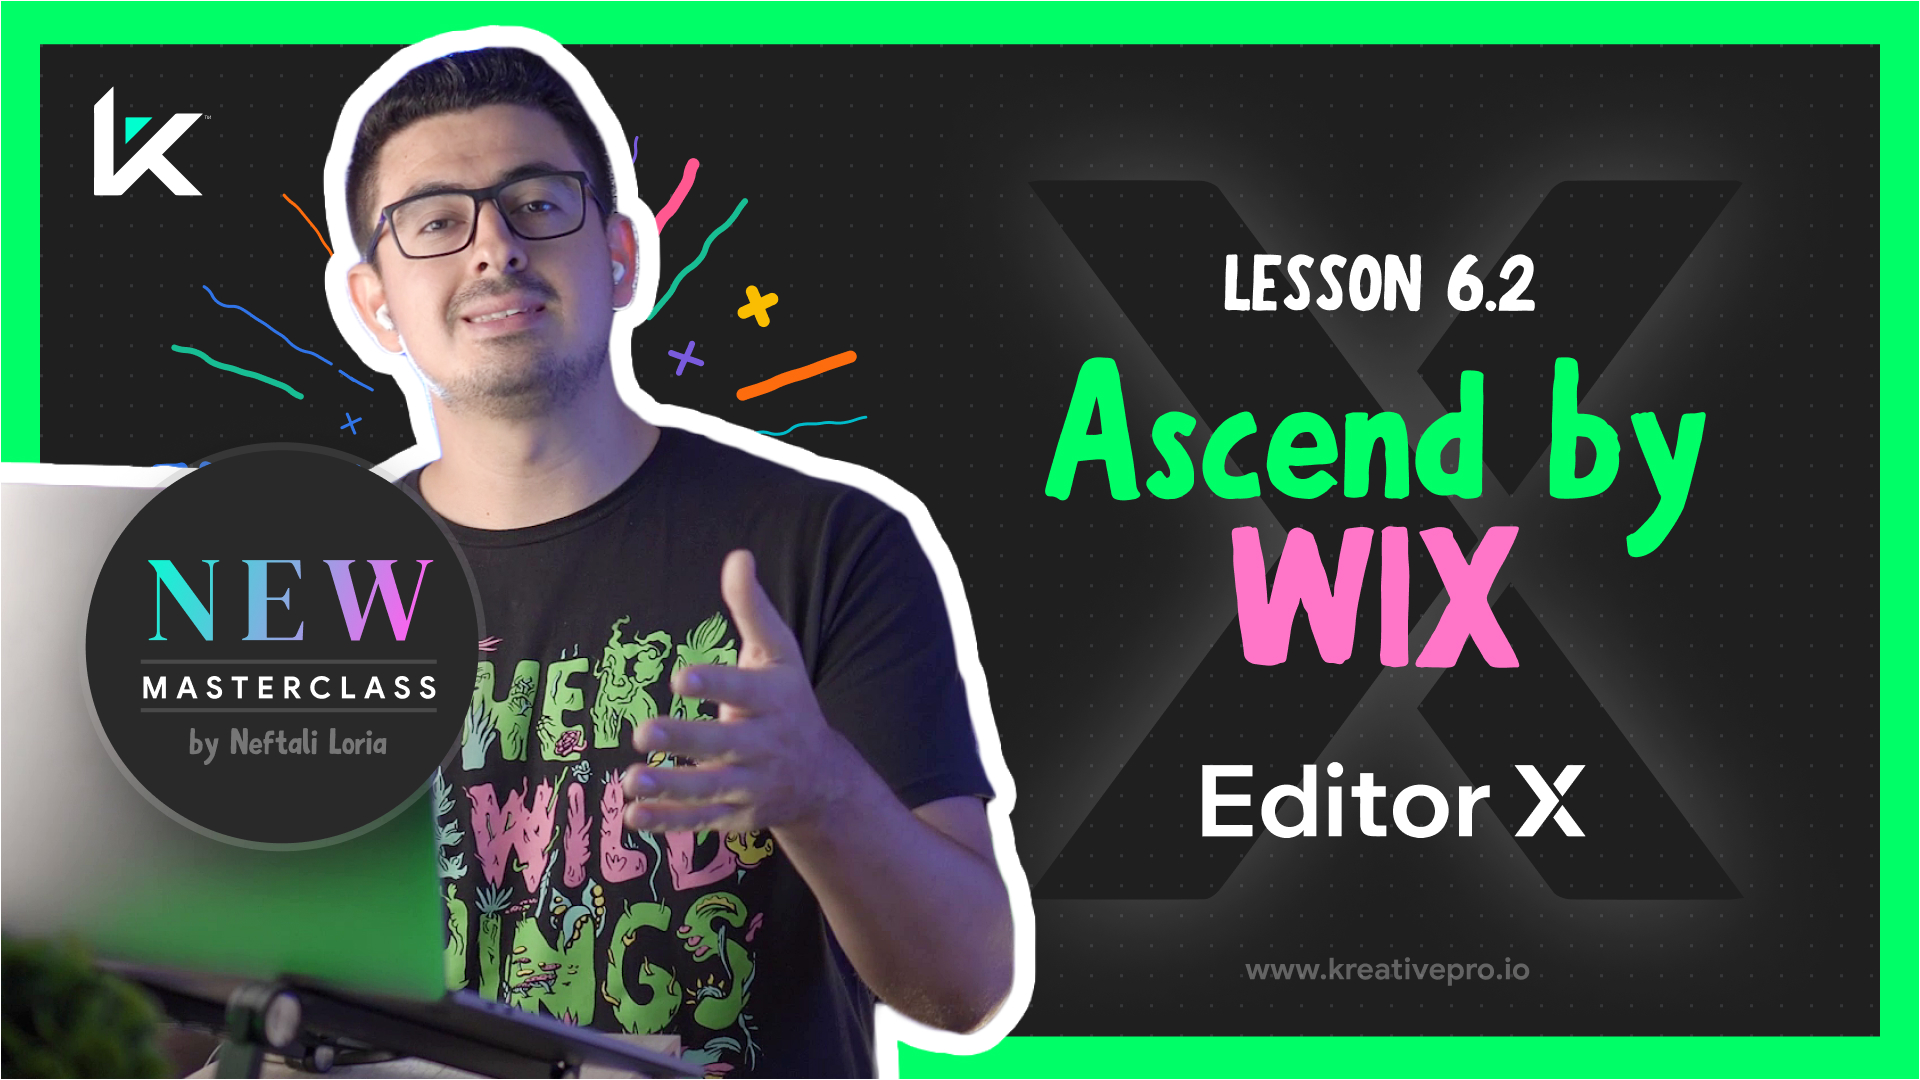 Editor X 6.2 - Ascend Business Tools